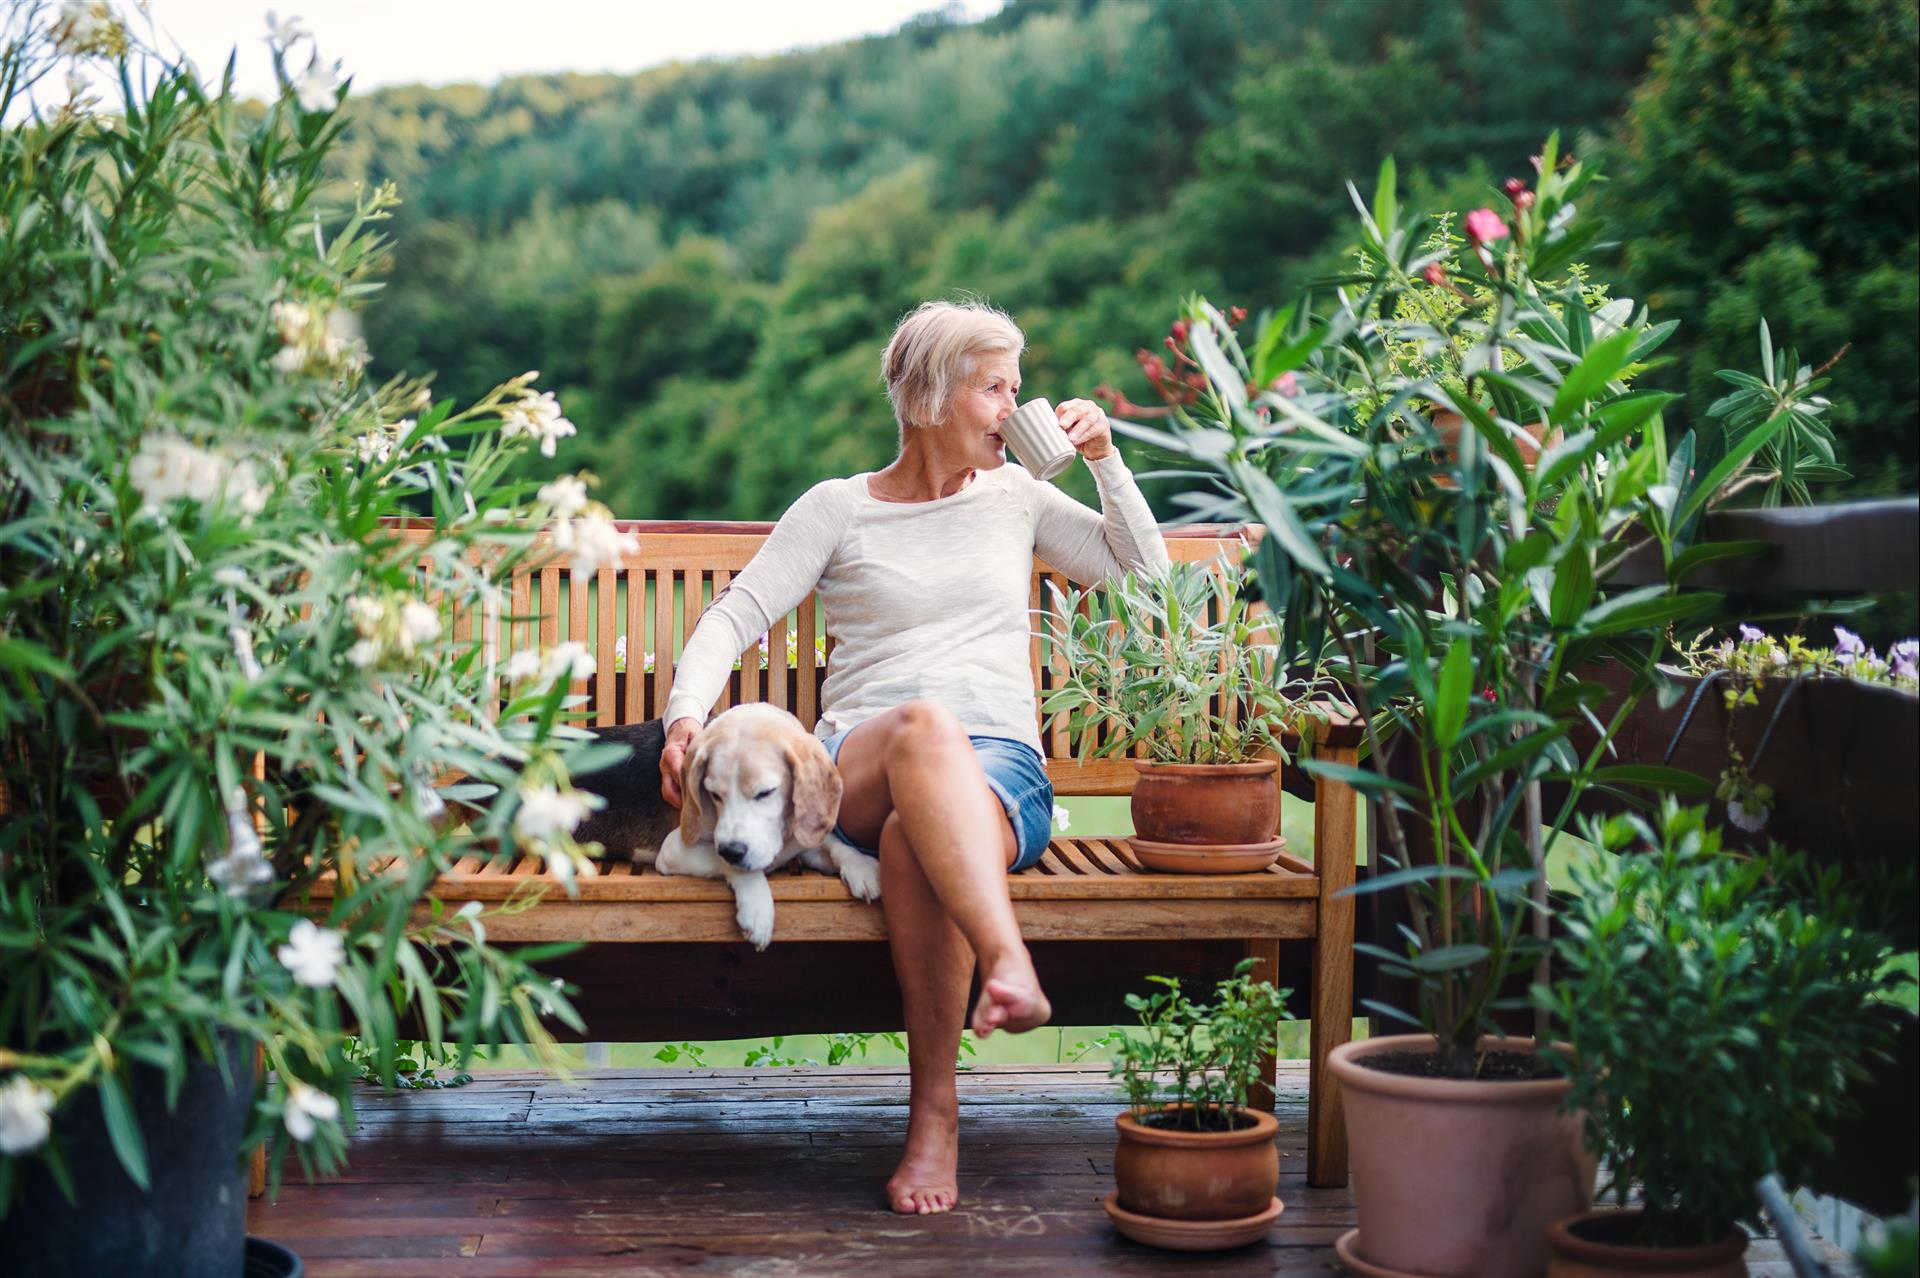 5 Great Ways to Keep Having Fun Outdoors with Social Distancing